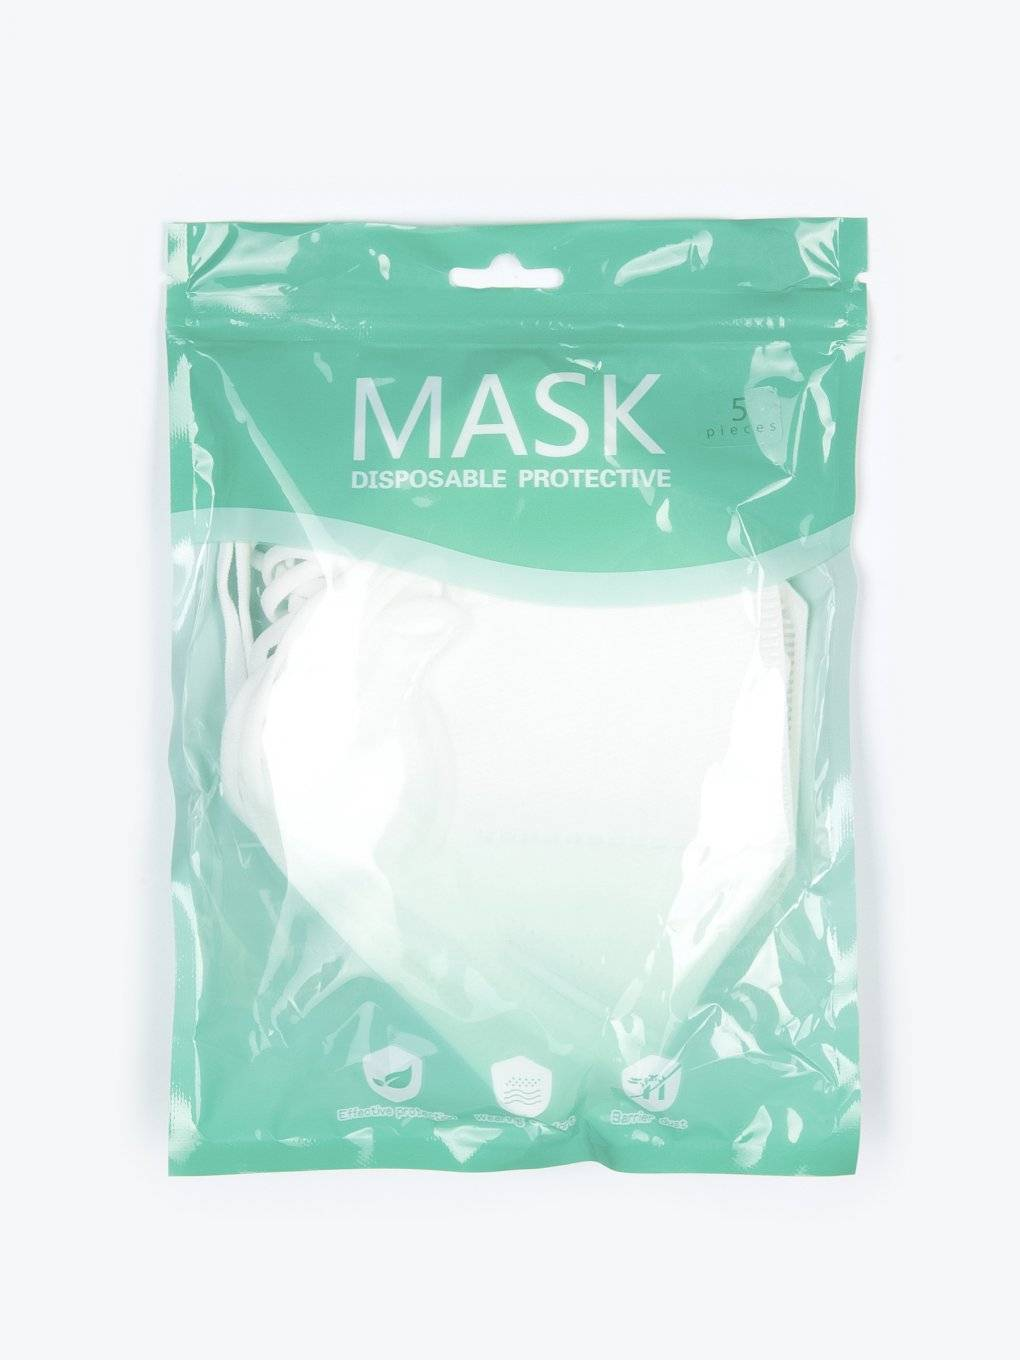 4-ply face mask (5 pcs)